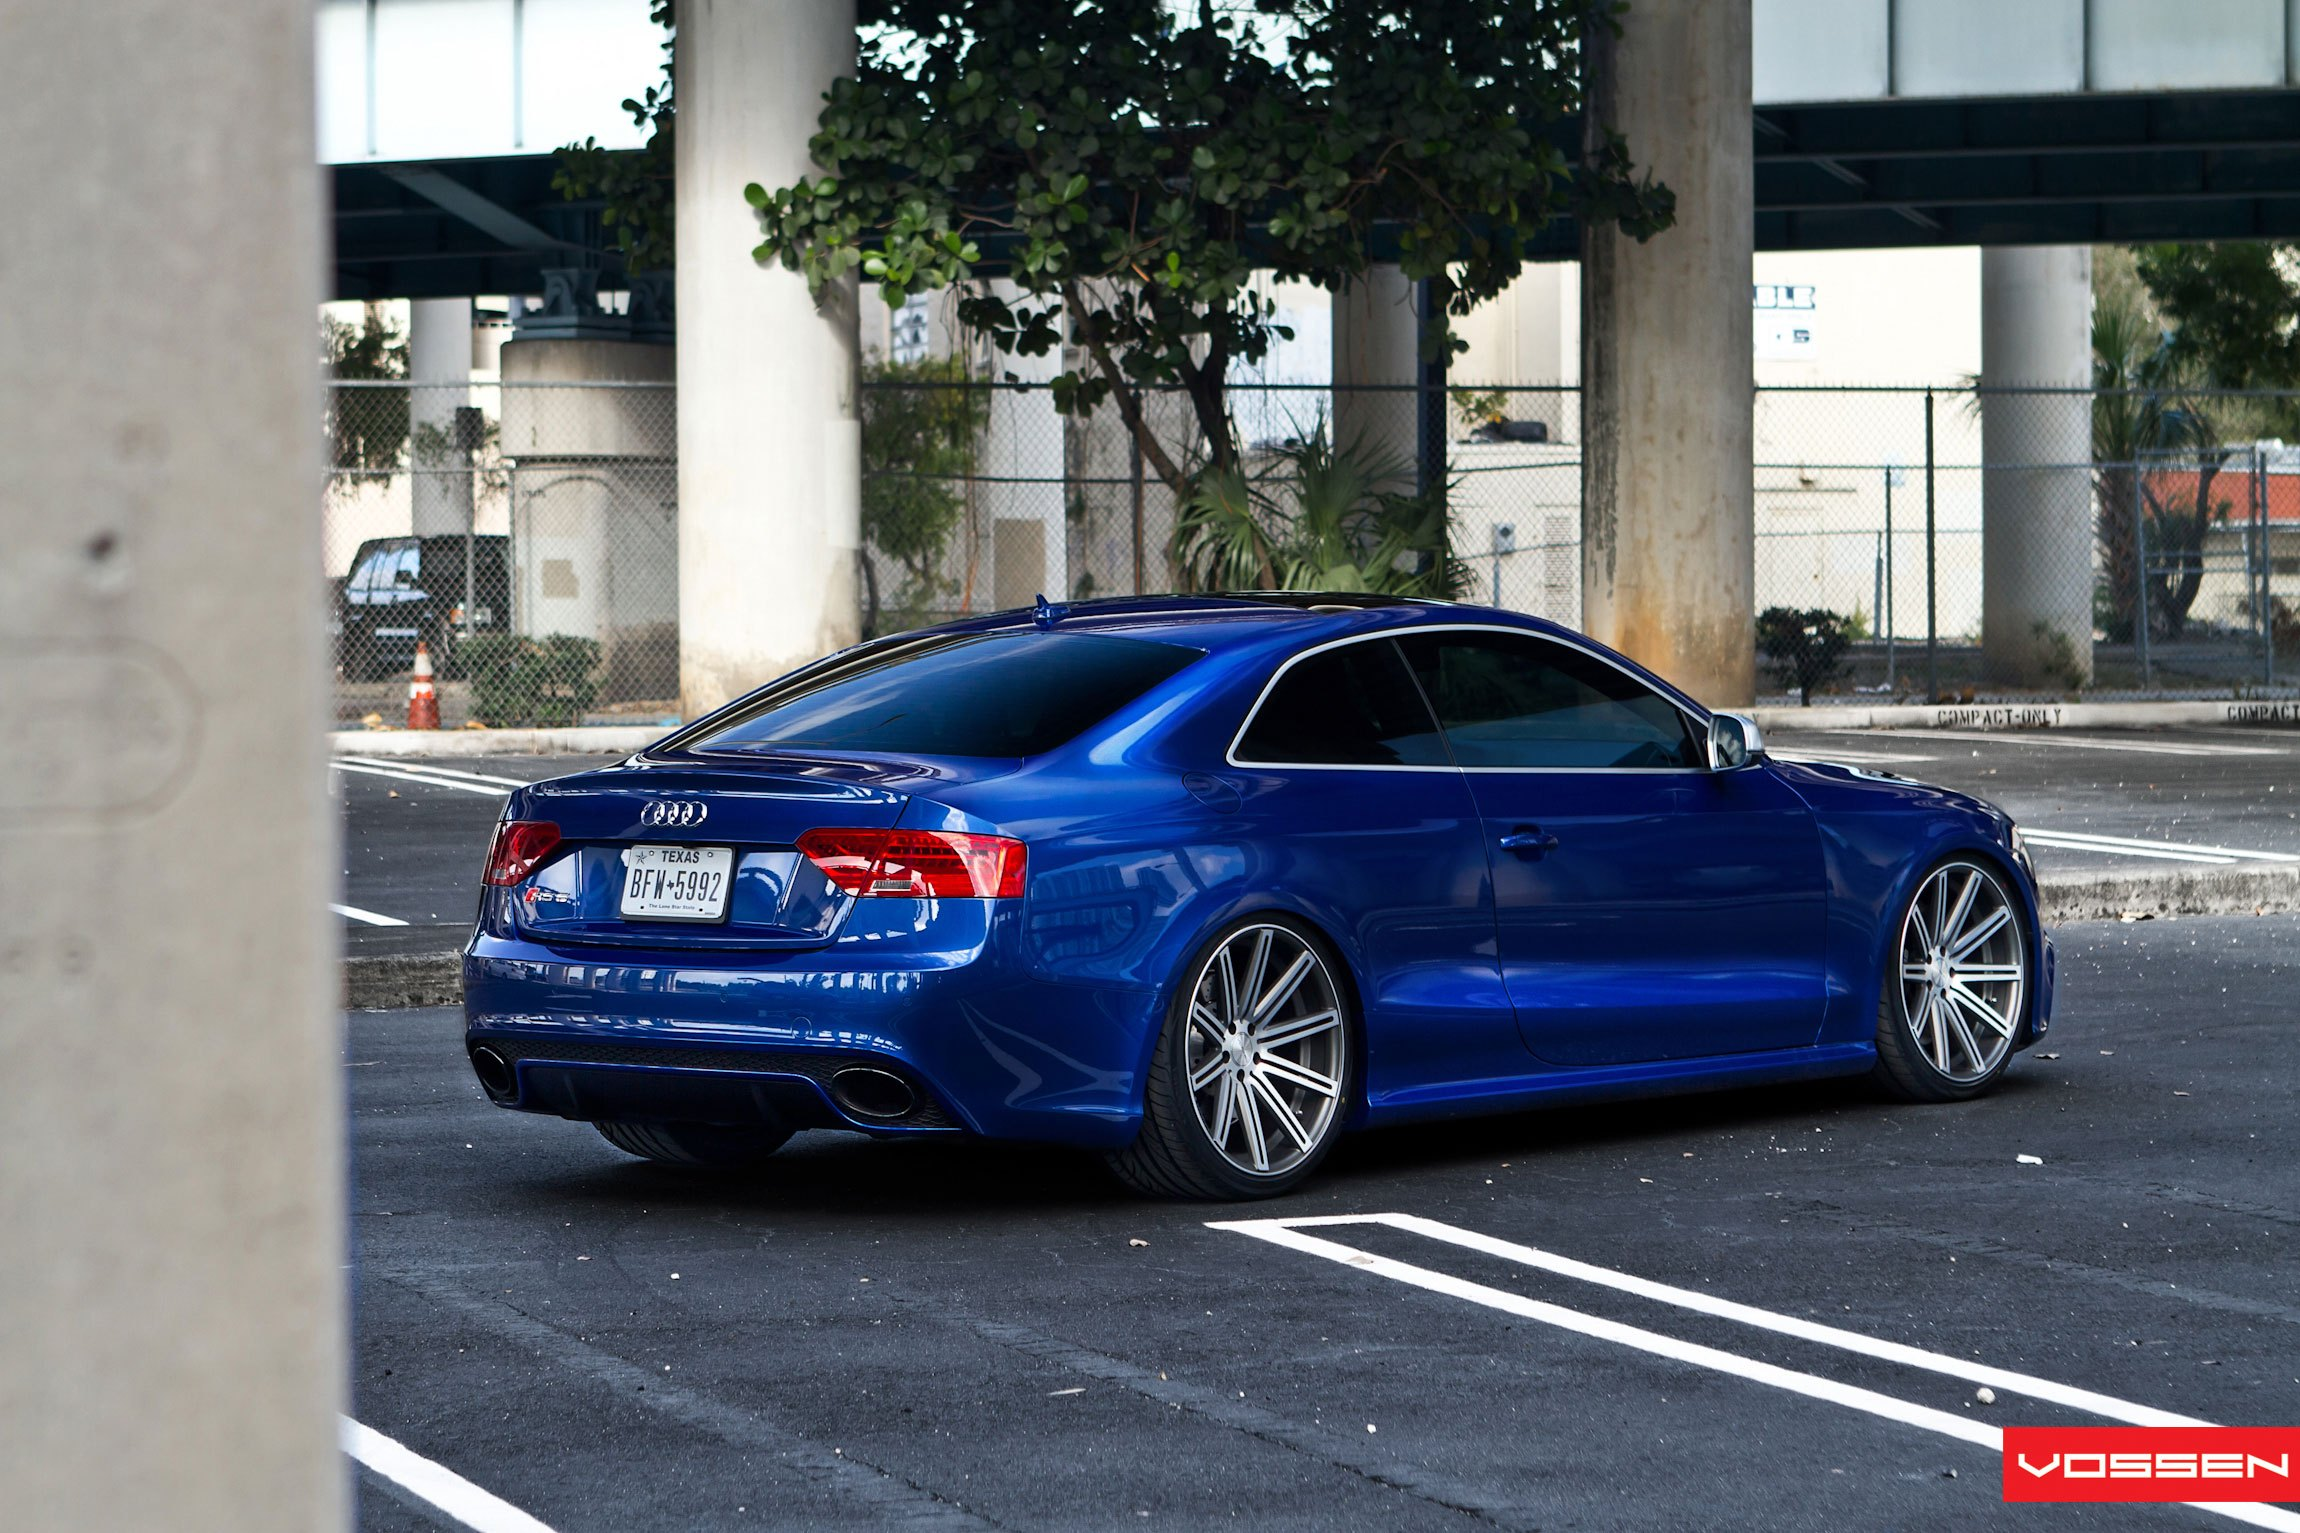 Electric Blue Audi S5 Gets a Lowering Kit and Aftermarket ...